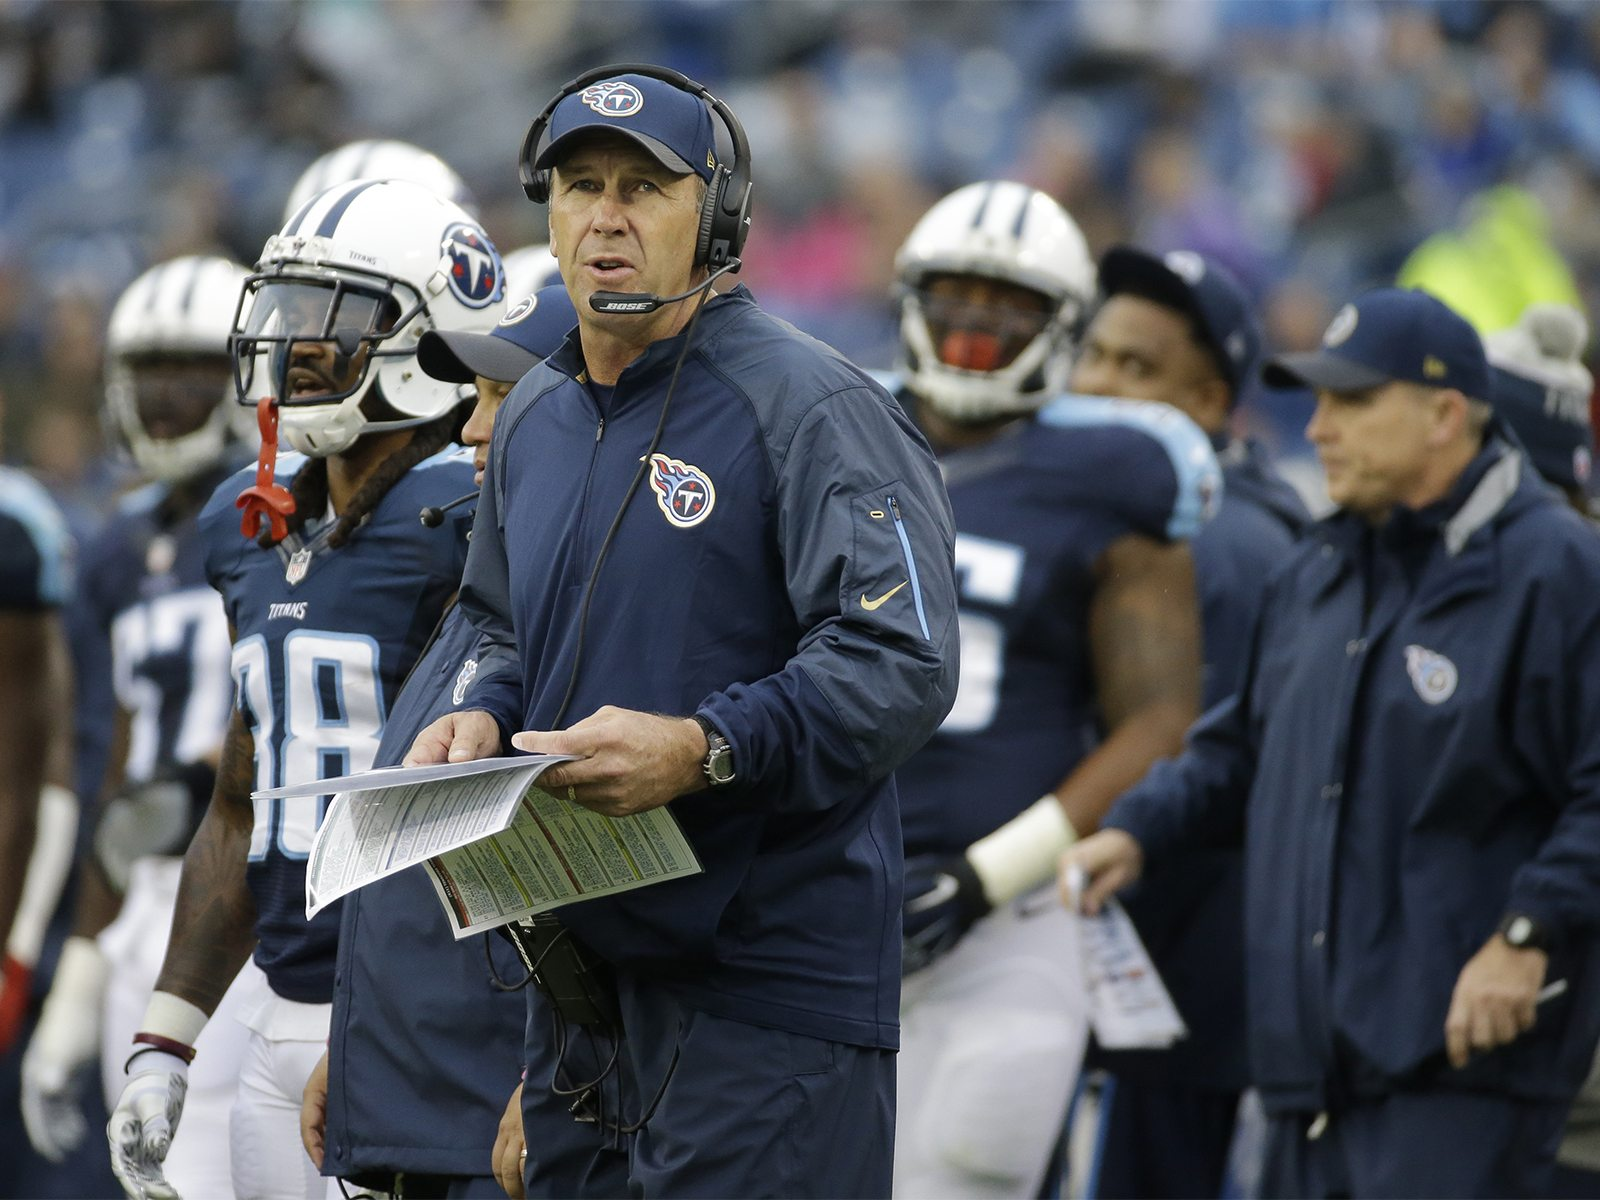 Tennessee Titans interim head coach Mike Mularkey watches from the sideline in the first half of an NFL football game between the Titans and the Oakland Raiders Sunday, Nov. 29, 2015, in Nashville, Tenn. (AP Photo/James Kenney)